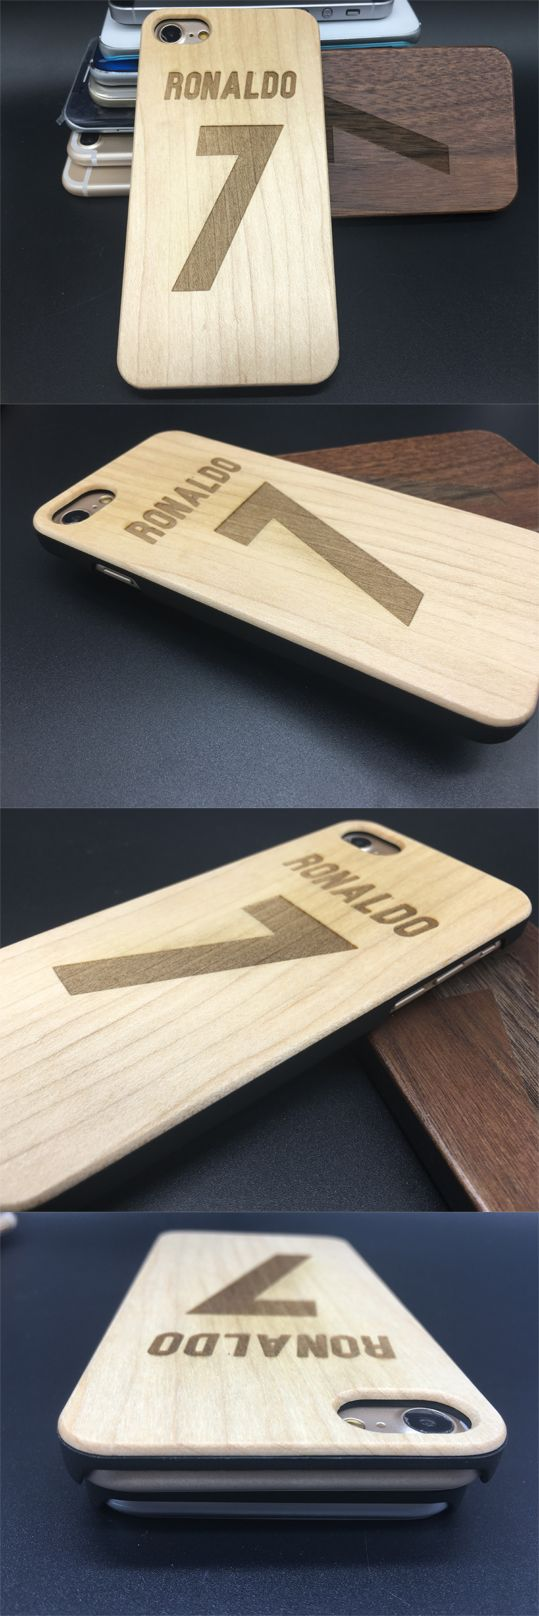 Shop page: www.jiacase.com Personalized engraving Monogram one phone cases,NFL,NHL,Soccer jersey,NBA jerseys.name and number on wood phone case for iPhone 7/7plus,6/6S/6Splus,5/5s/5se,etc #Ronaldo #7 #CR7 #real madrid #jersey #soccer #football #wooden #case #cover #iPhone #7 #samsung #galaxy #S7 #S6 #Edge #engrave #wood #phone #cover #skin